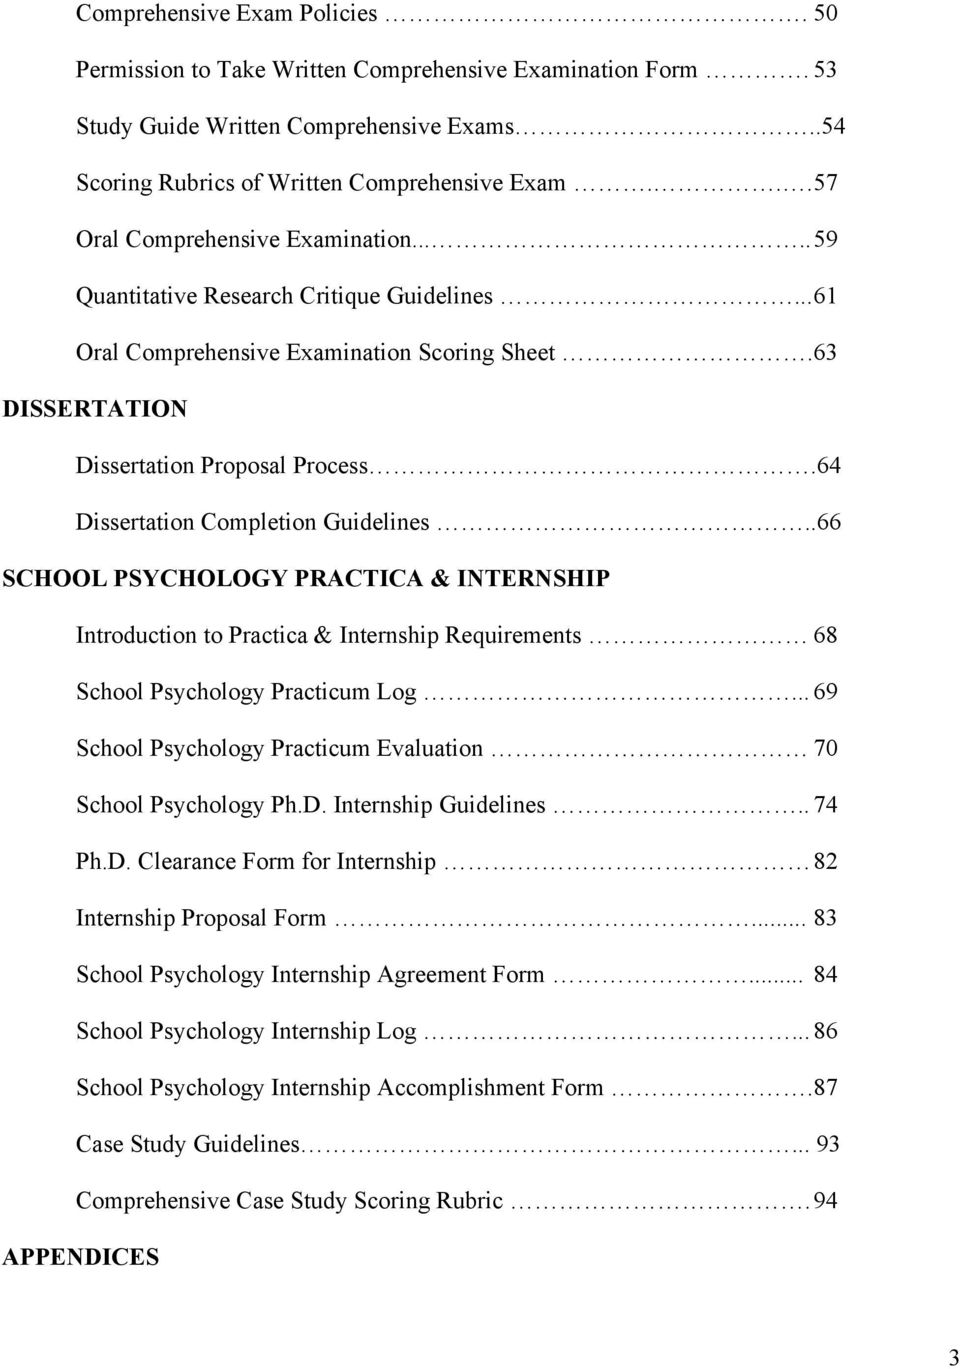 64 Dissertation Completion Guidelines..66 SCHOOL PSYCHOLOGY PRACTICA & INTERNSHIP Introduction to Practica & Internship Requirements 68 School Psychology Practicum Log.